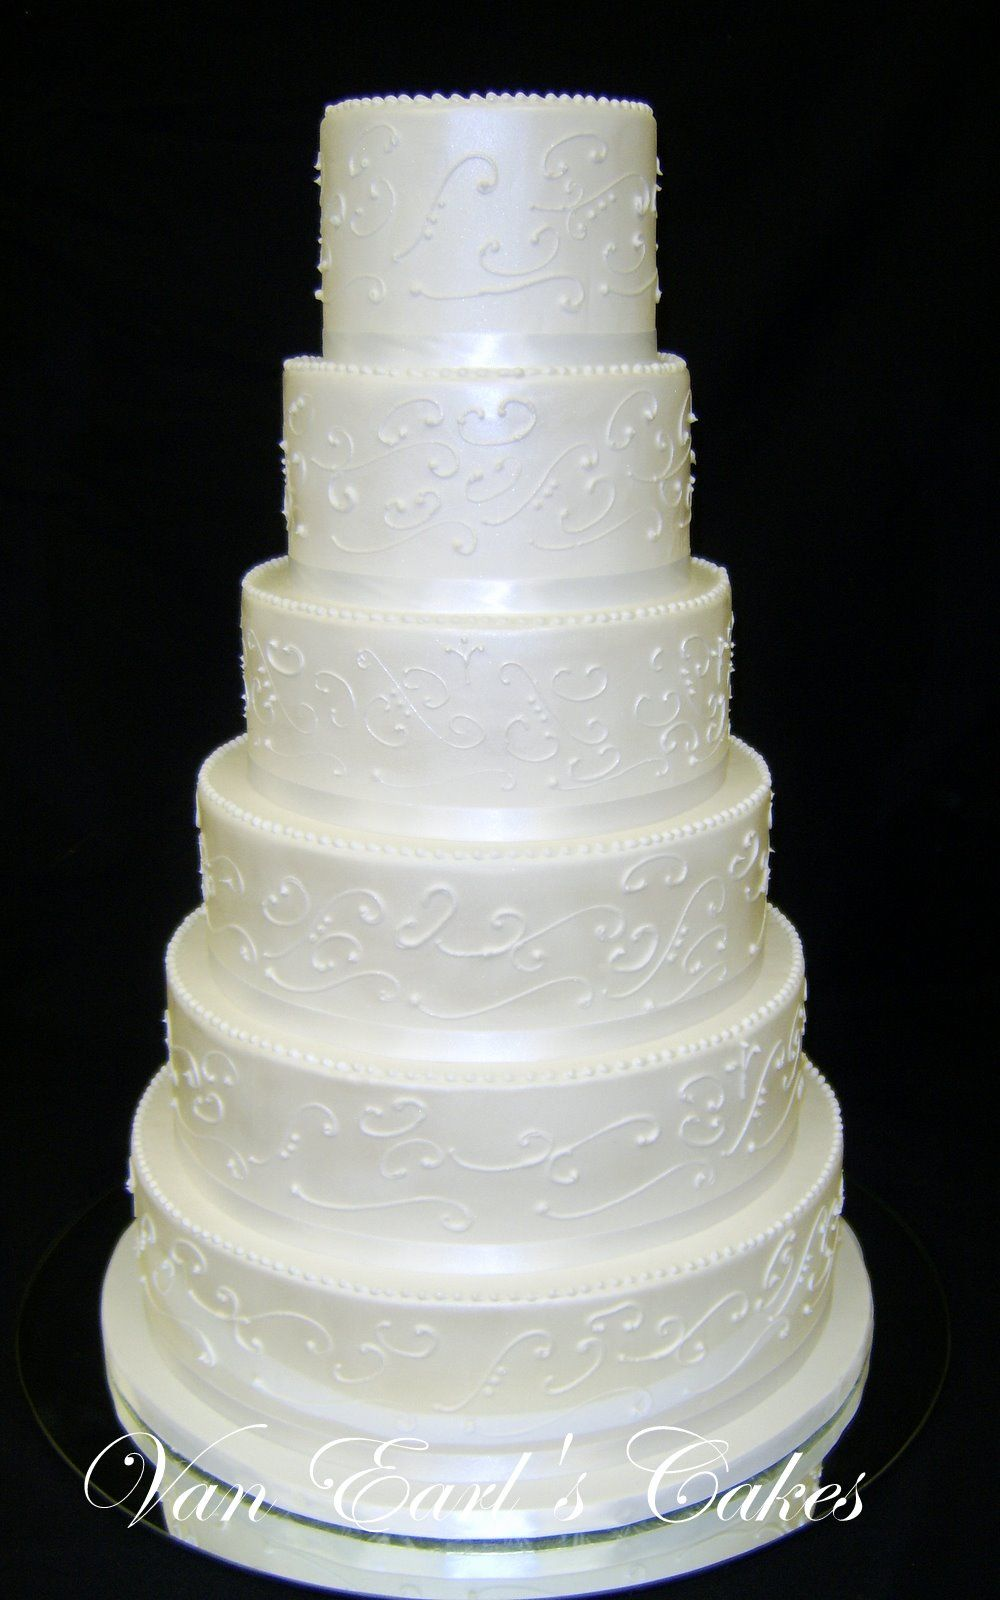 tall wedding cakes york pa | Van Earl\'s Cakes: Six Tier White ...